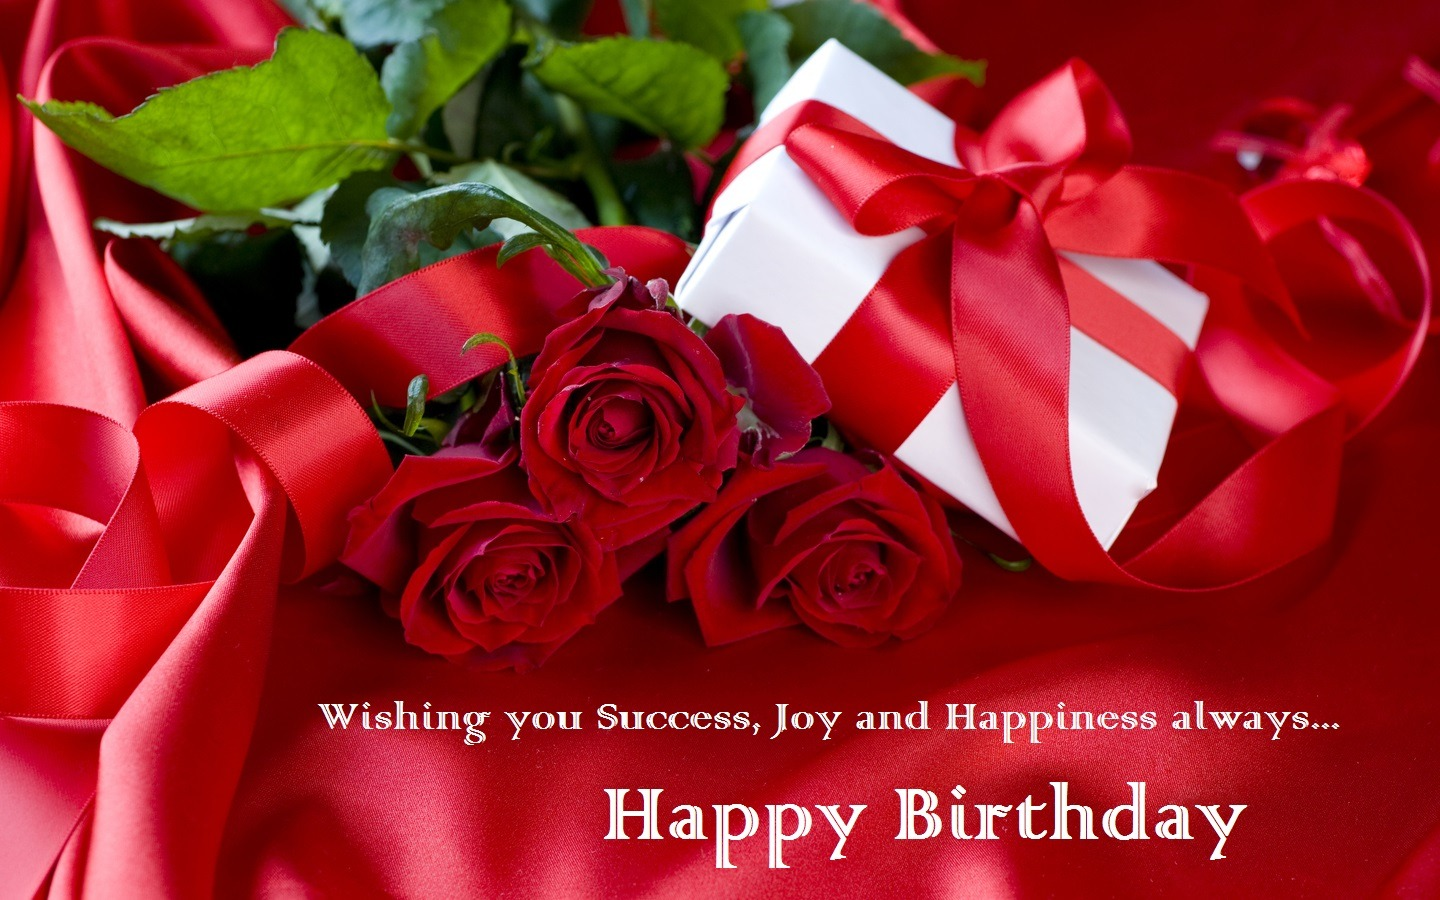 Happy Birthday Funny Wishes, Messages, SMS